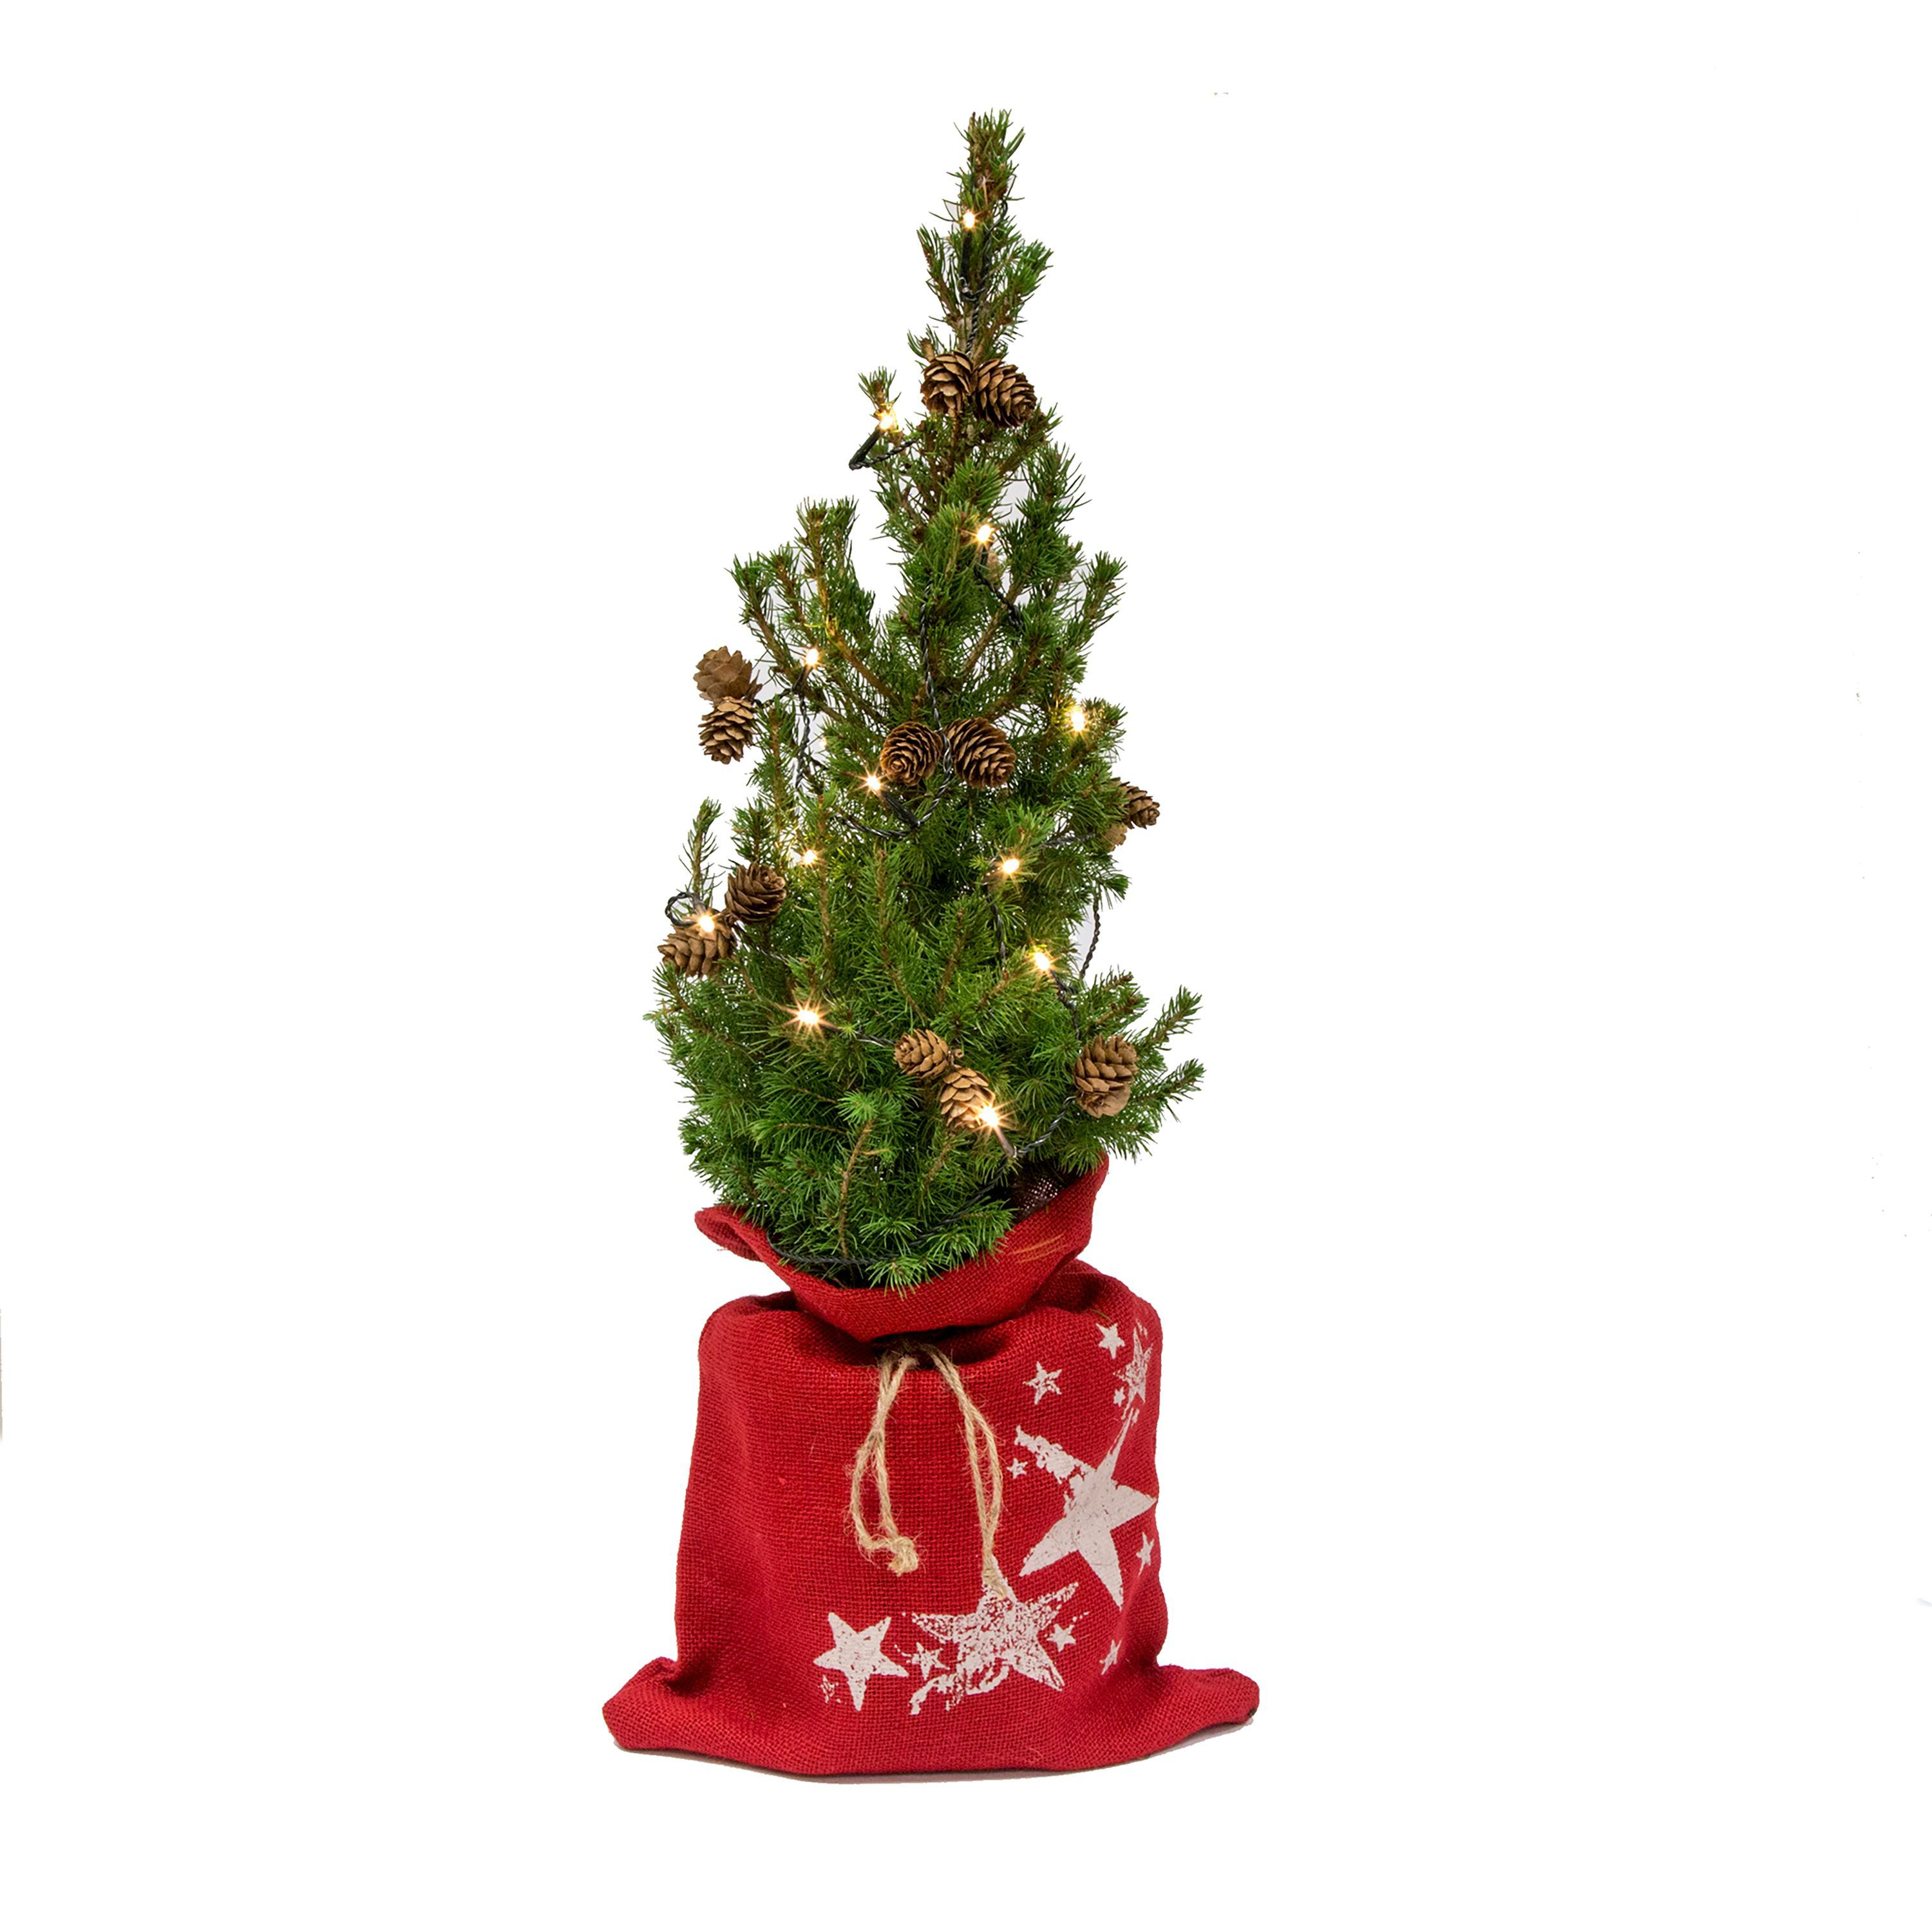 Images Of Real Christmas Trees: Decorated Small Real Christmas Tree With Lights